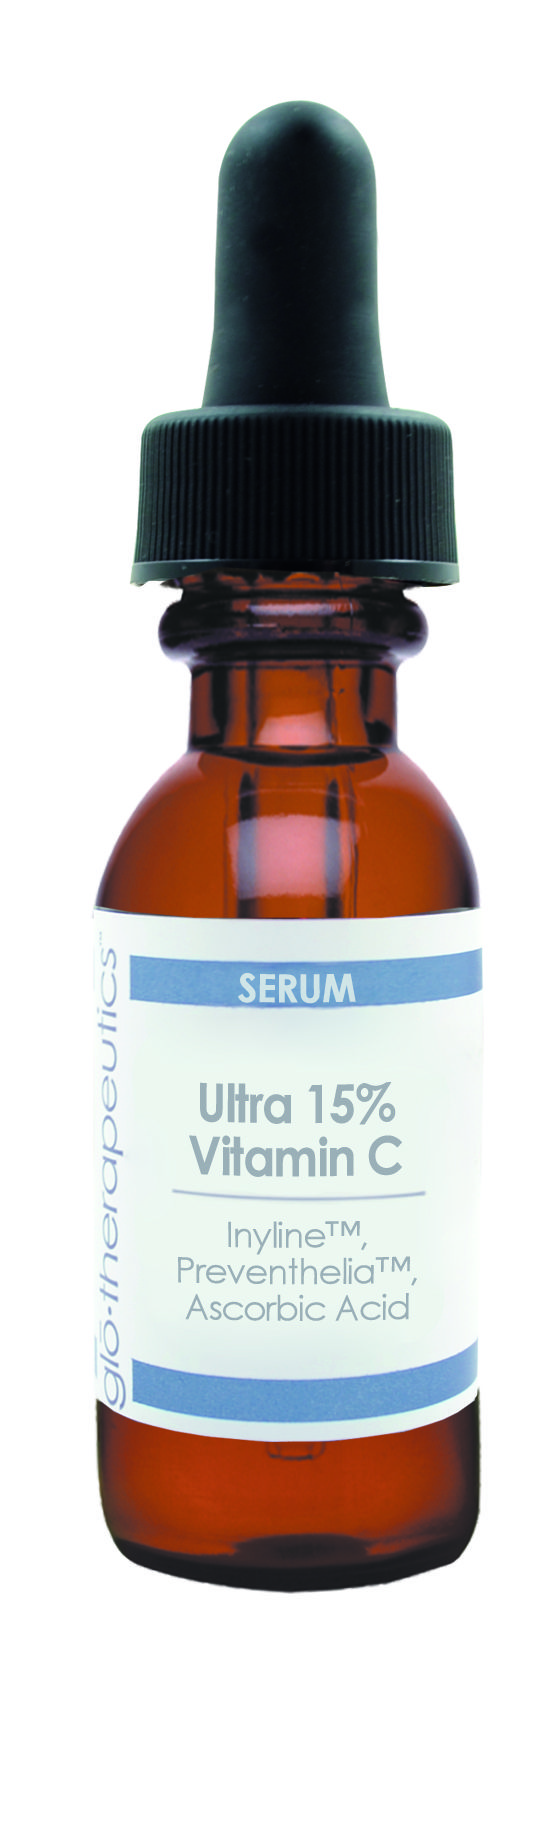 Ascorbic Acid As an antioxidant, Vitamin C scavenges and destroys reactive oxidizing agents and other free radicals. Because of this ability, it provides important protection against damage induced by UV radiation. Vitamin C also improves skin elasticity, decreases wrinkles by stimulating collagen synthesis, reduces erythema, promotes wound healing and suppresses cutaneous pigmentation.